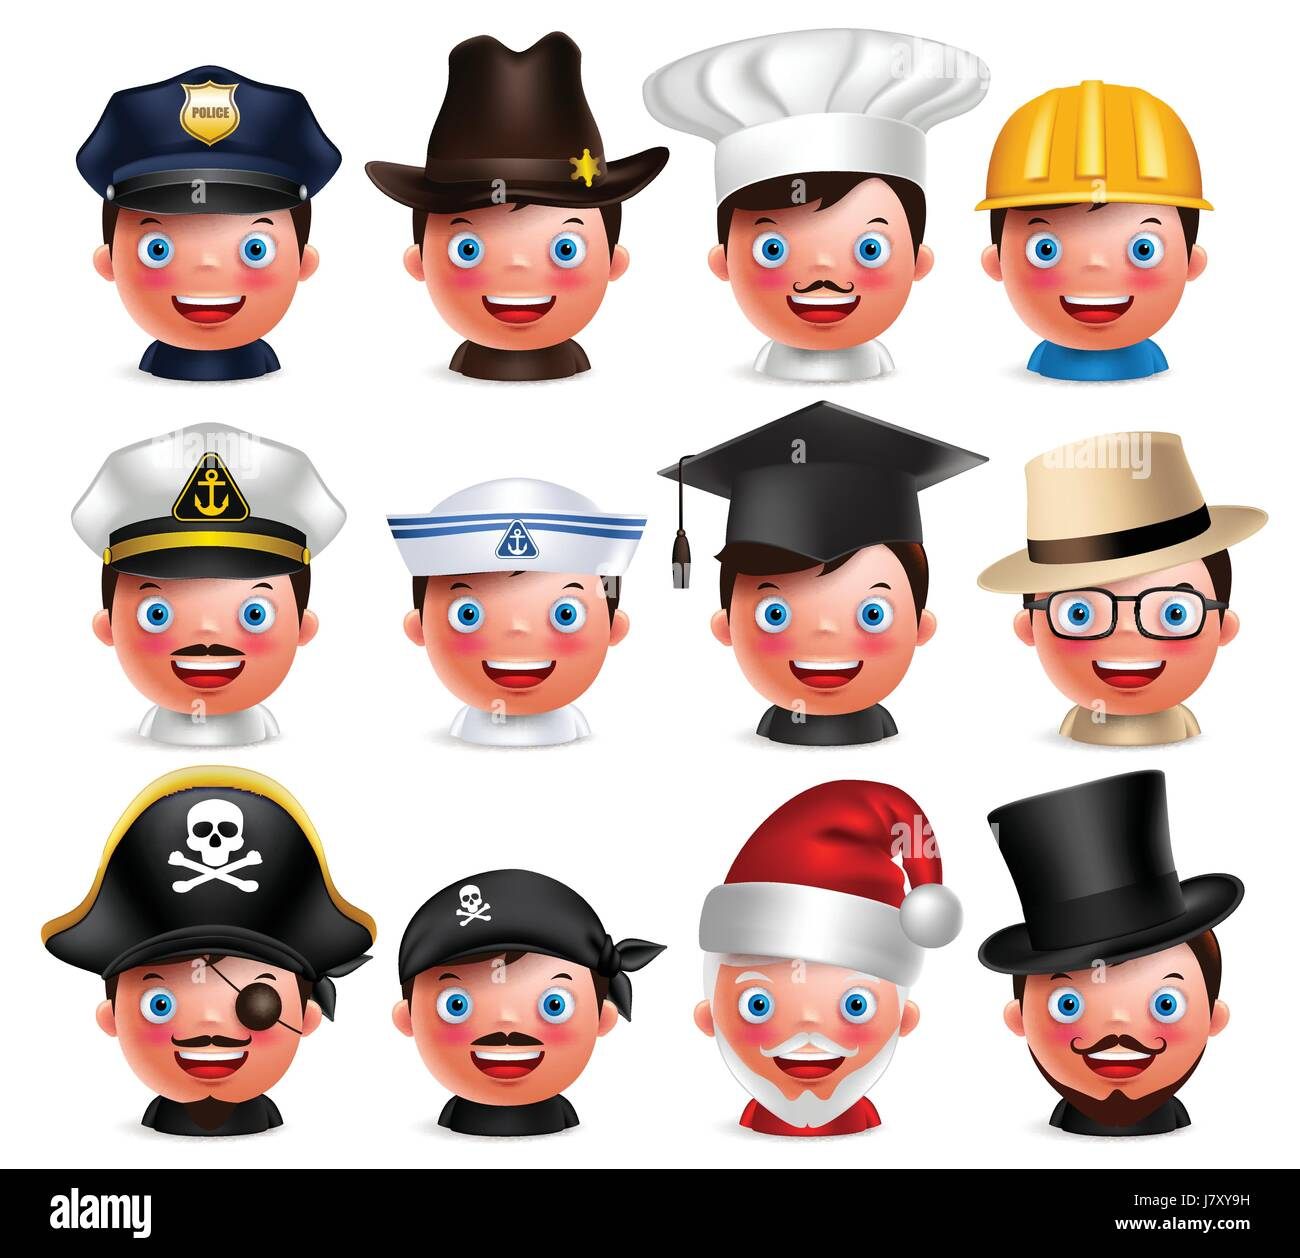 Profession avatar set of happy emoticon heads with different hats of police, seaman, magician, Santa Claus and pirate - Stock Vector